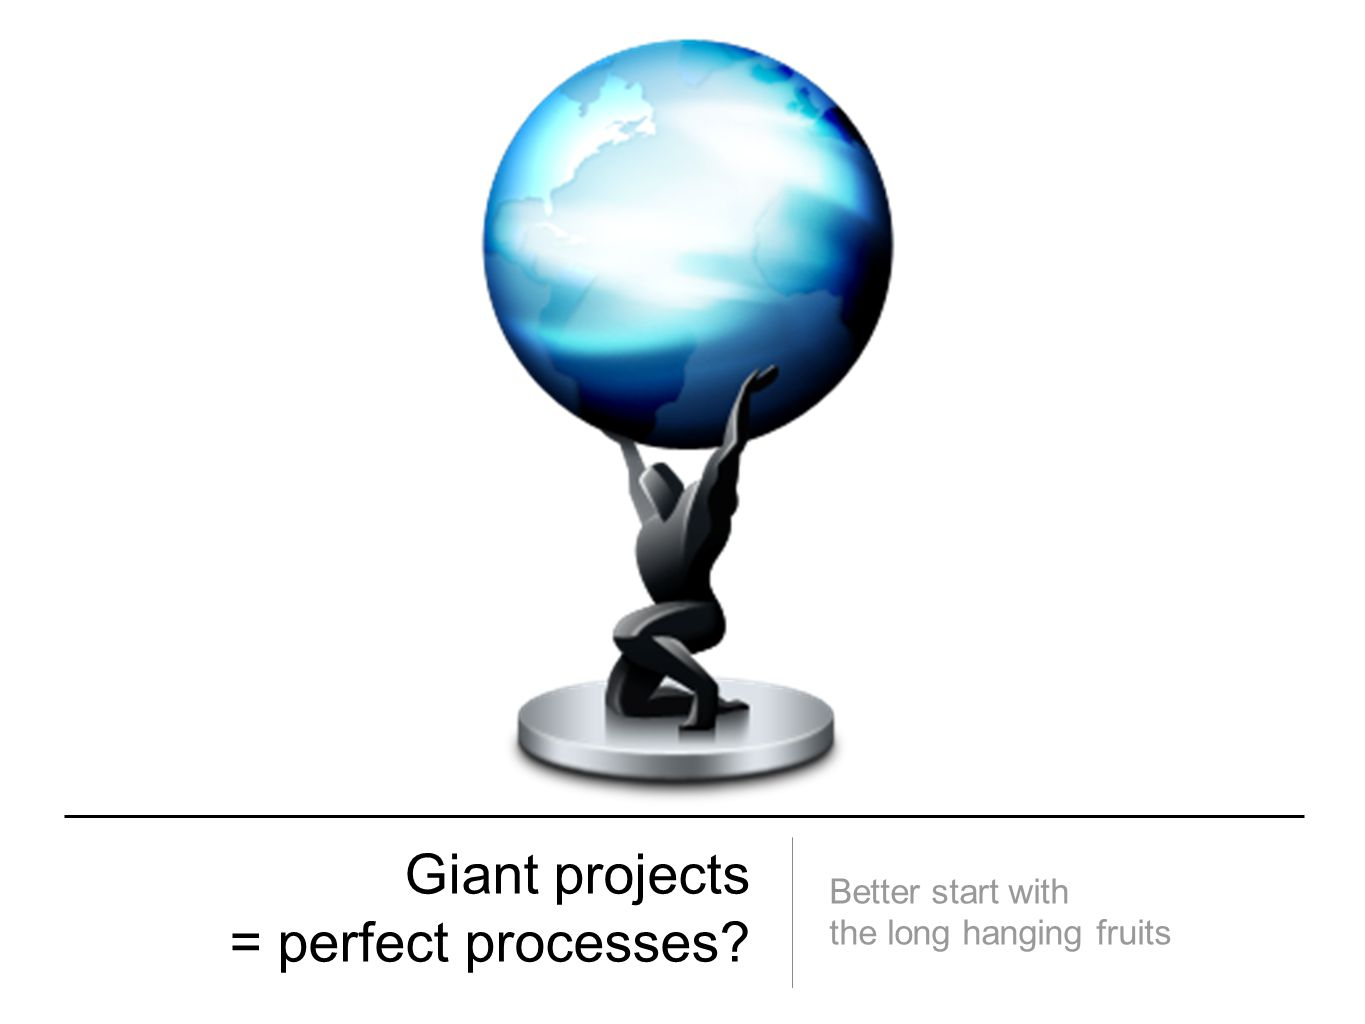 Giant projects = perfect processes? Better start with the long hanging fruits